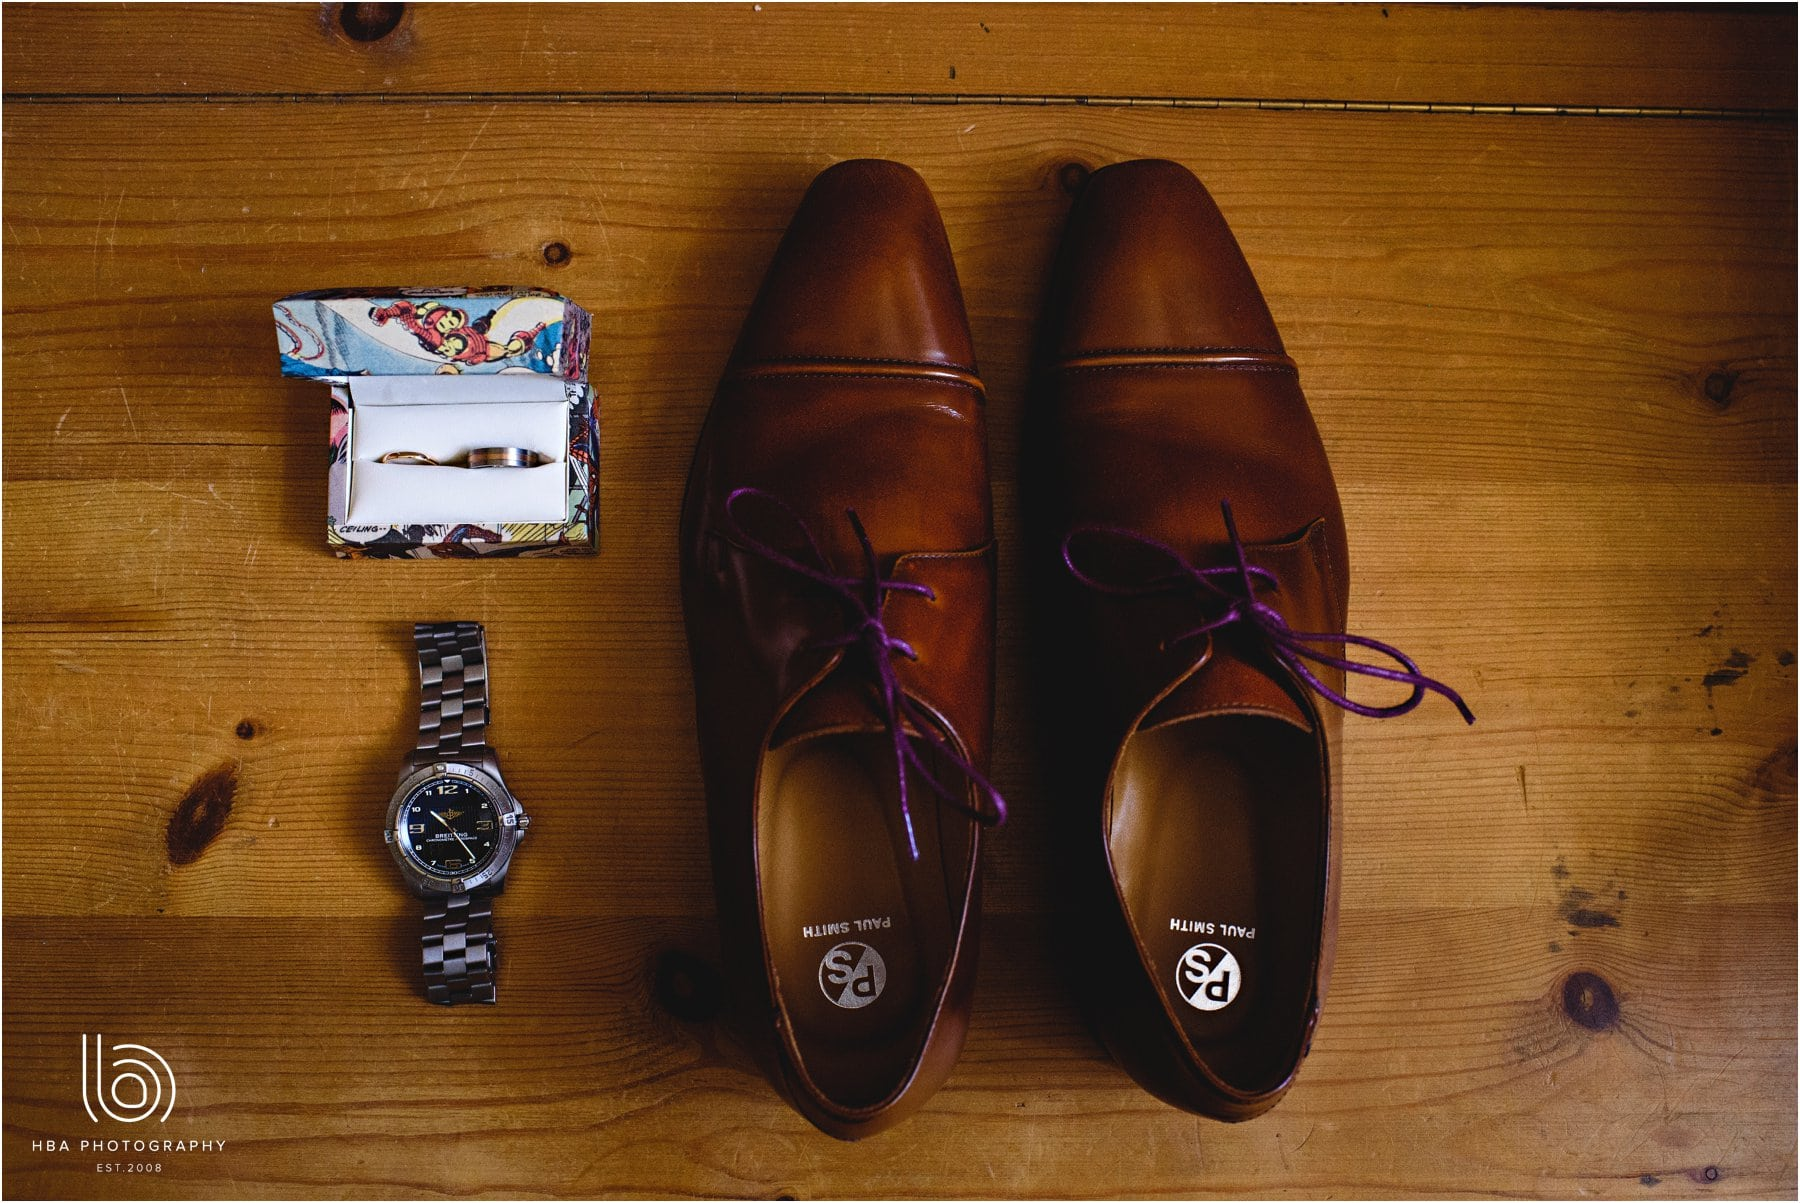 the groom's shoes & watch